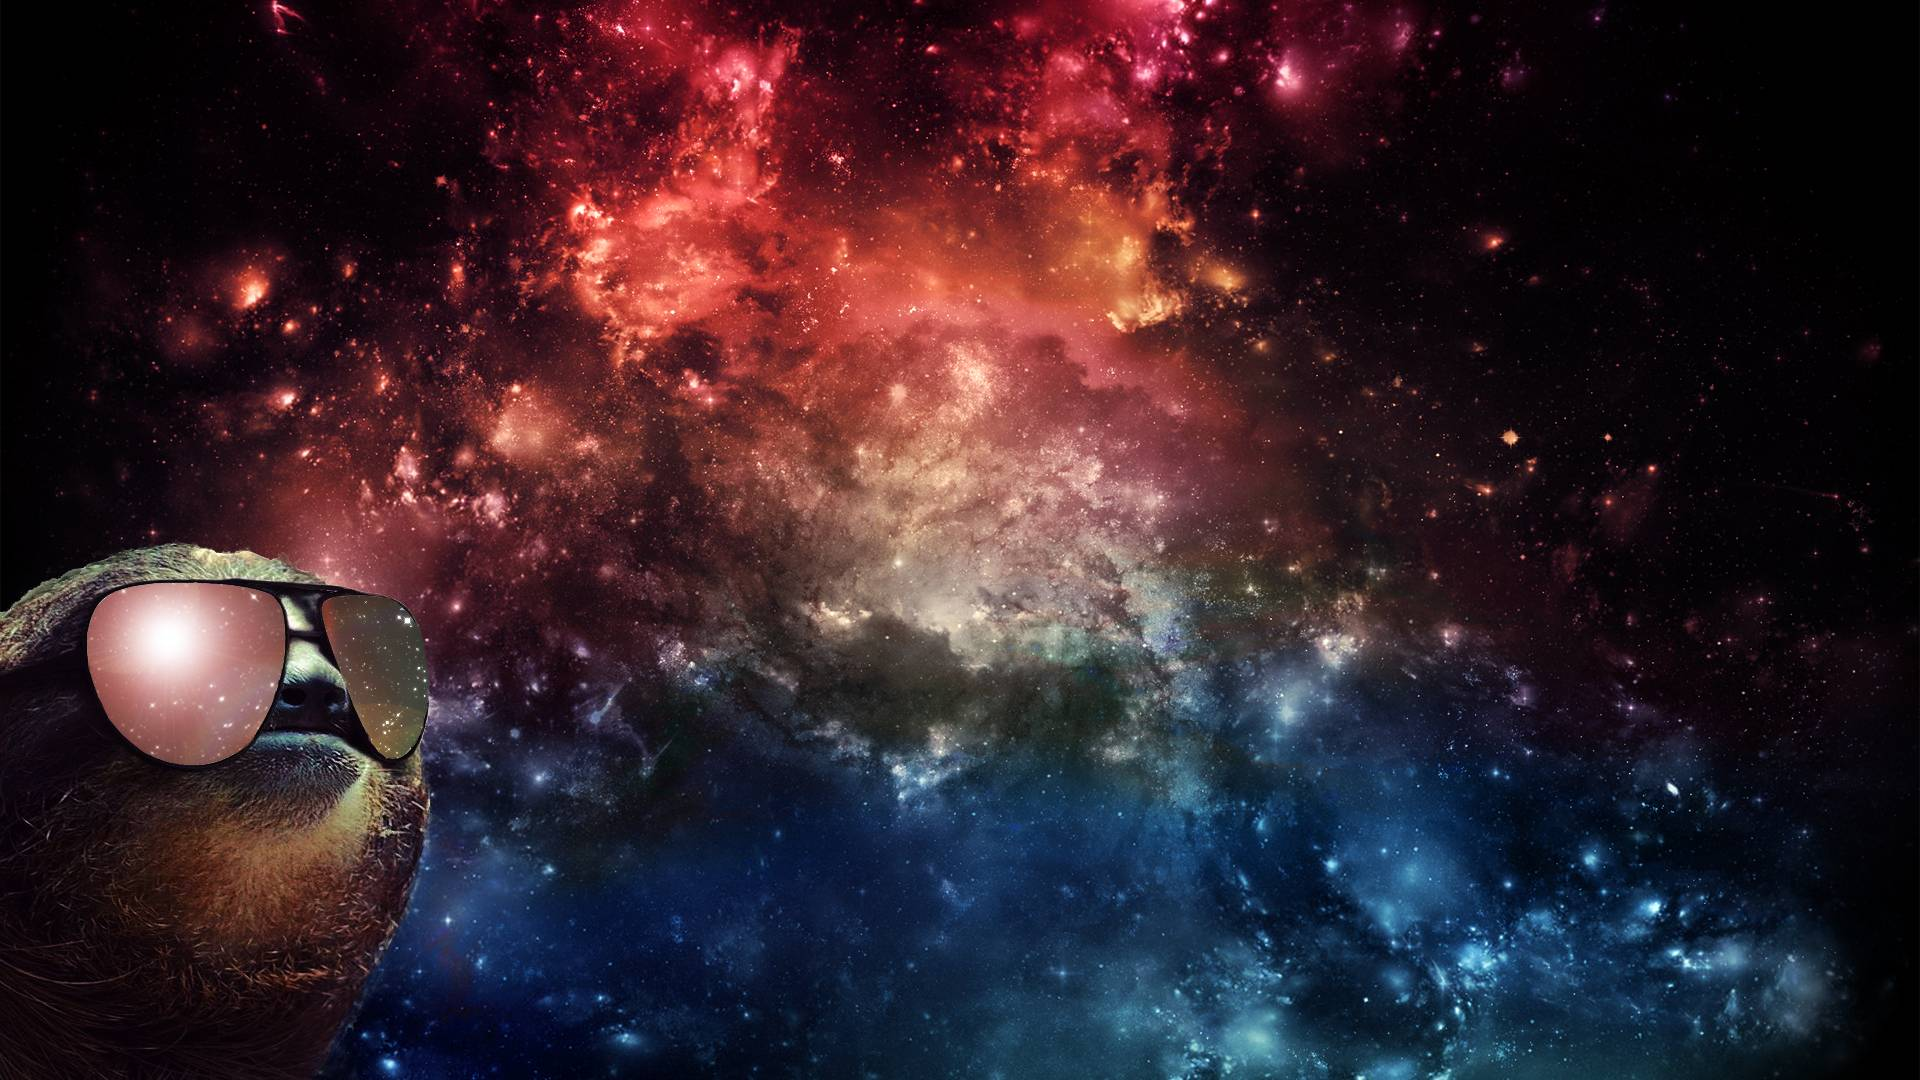 Space 1280 X 720 832120 Hd Wallpaper Backgrounds Download